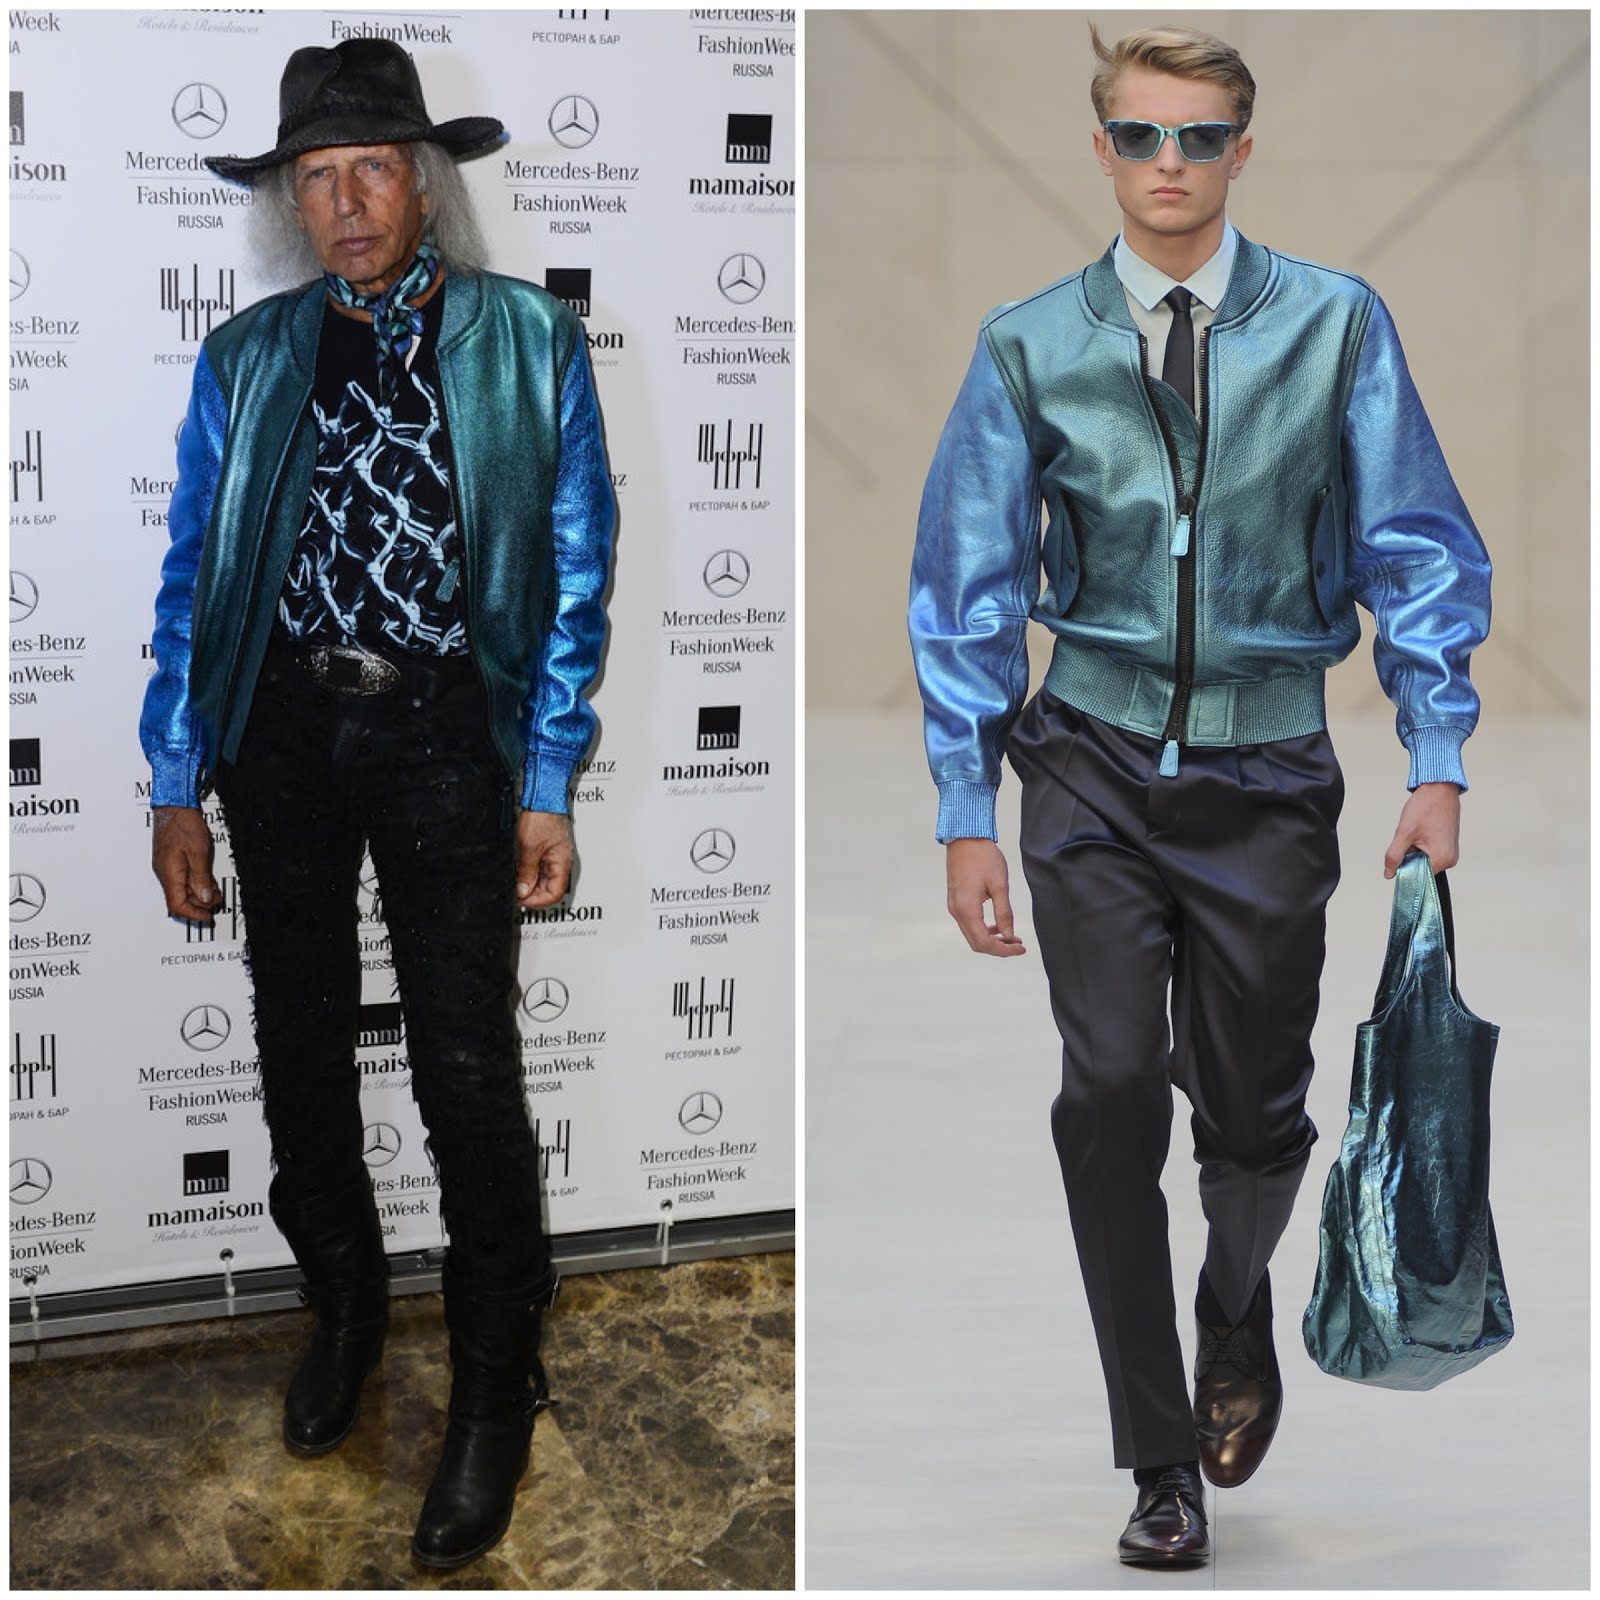 00O00 Menswear Blog james Goldstein in Burberry Prorsum Spring Summer 2013 metallic leather jacket - Closing Party Mercedes-Benz Fashion Week Russia Fall/Winter 2013/2014 at Mamaison All-Suites Spa Hotel on April 2, 2013 in Moscow, Russia